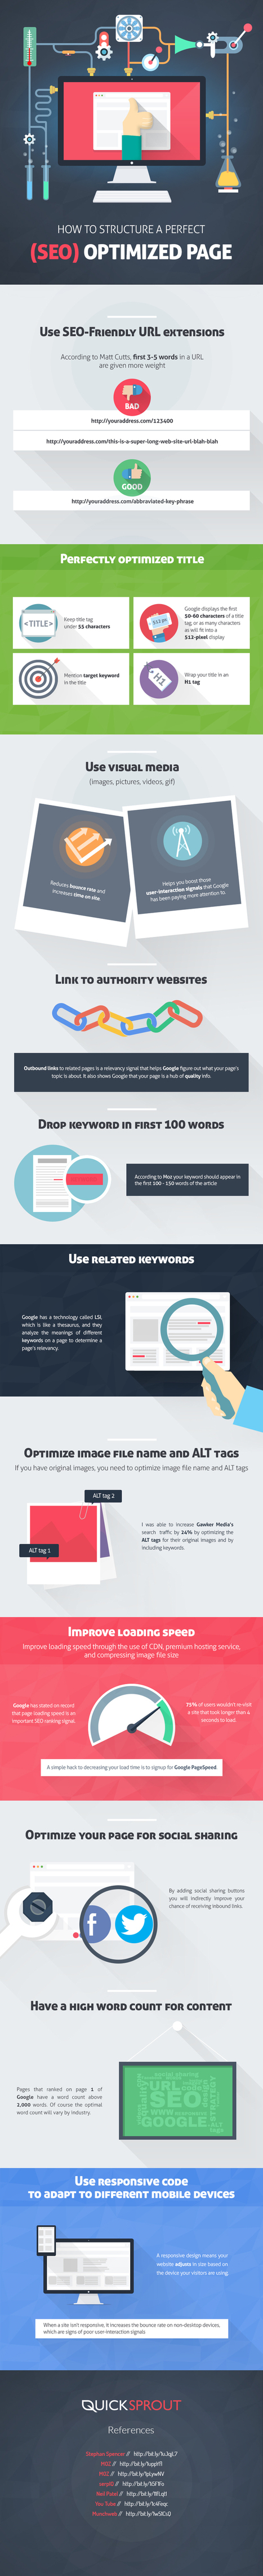 The Perfect On Page SEO Checklist for 2016 [Infographic] | SEO and Social Media Marketing | Scoop.it